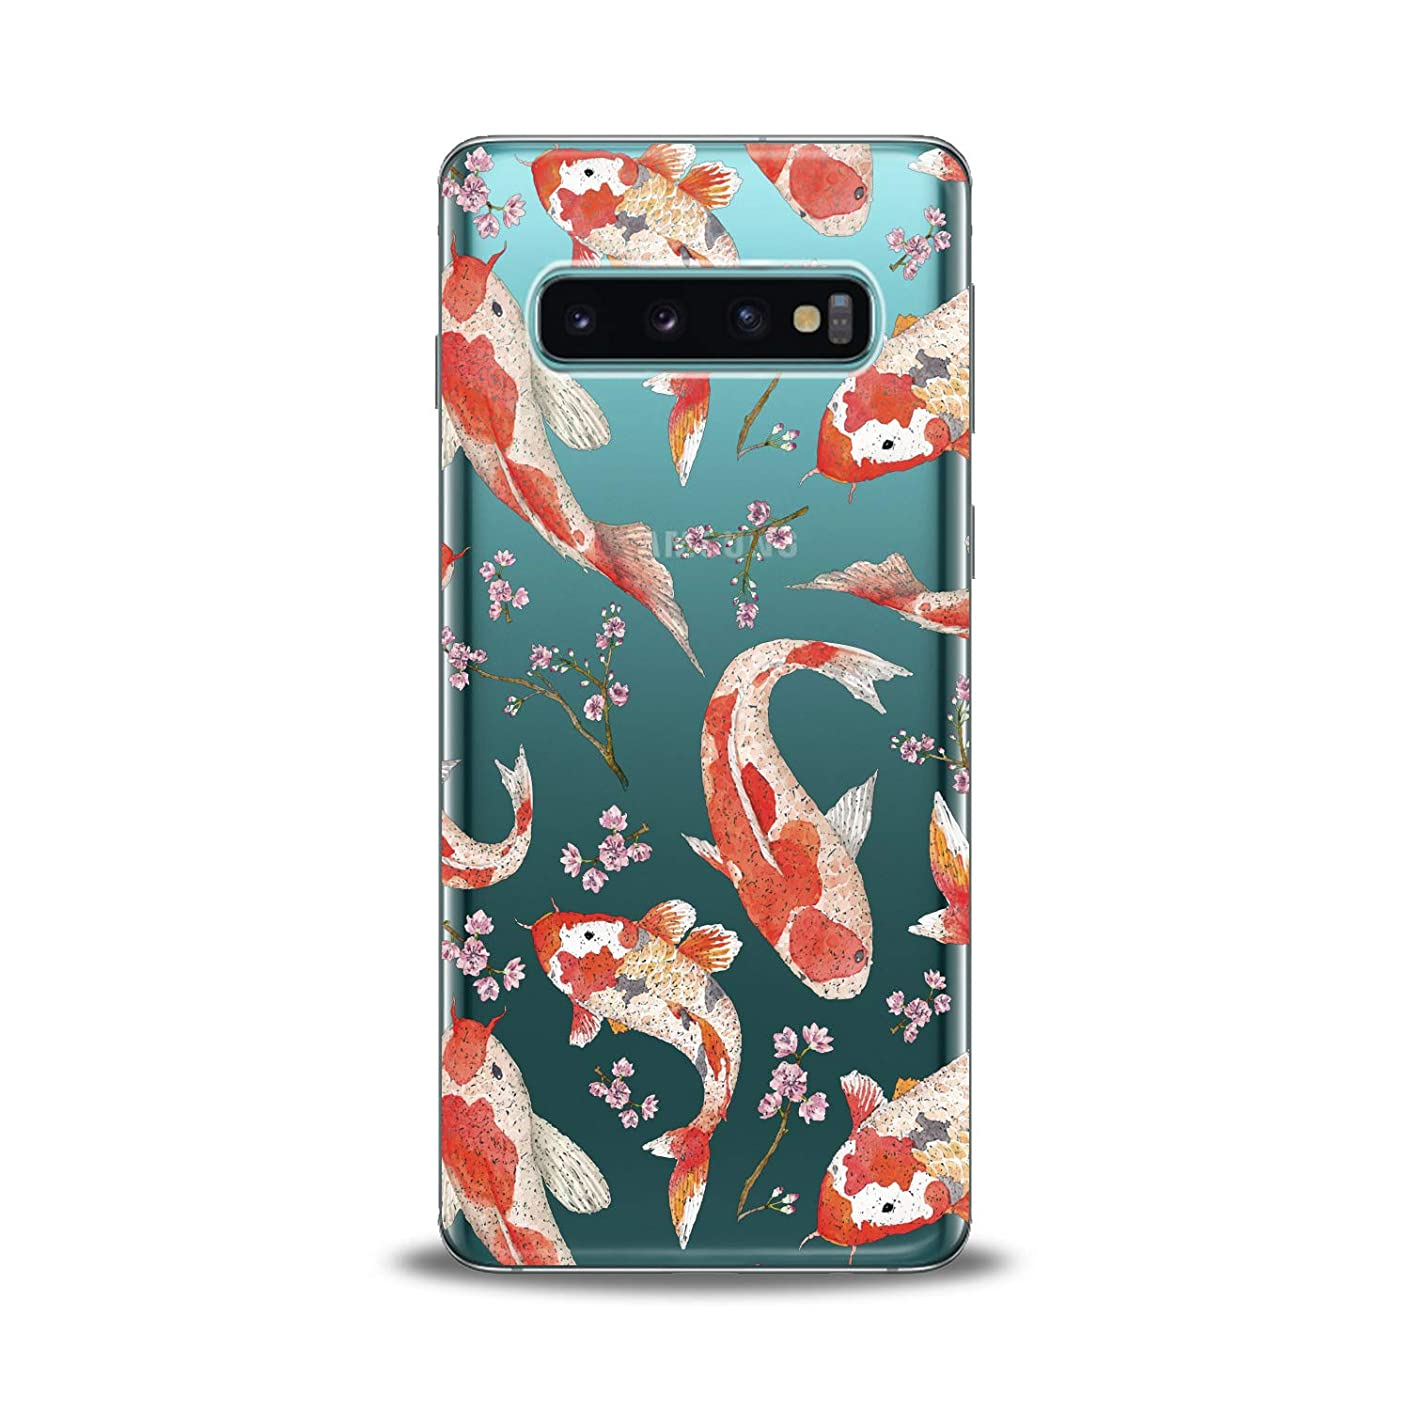 Lex Altern TPU Case for Samsung Galaxy s10 5G Plus 10e Note 9 s9 s8 s7 Awesome Orange Koi Fishes Clear Silicone Cover Red Print Protective Pink Branches Lightweight Flexible Girl Transparent Present